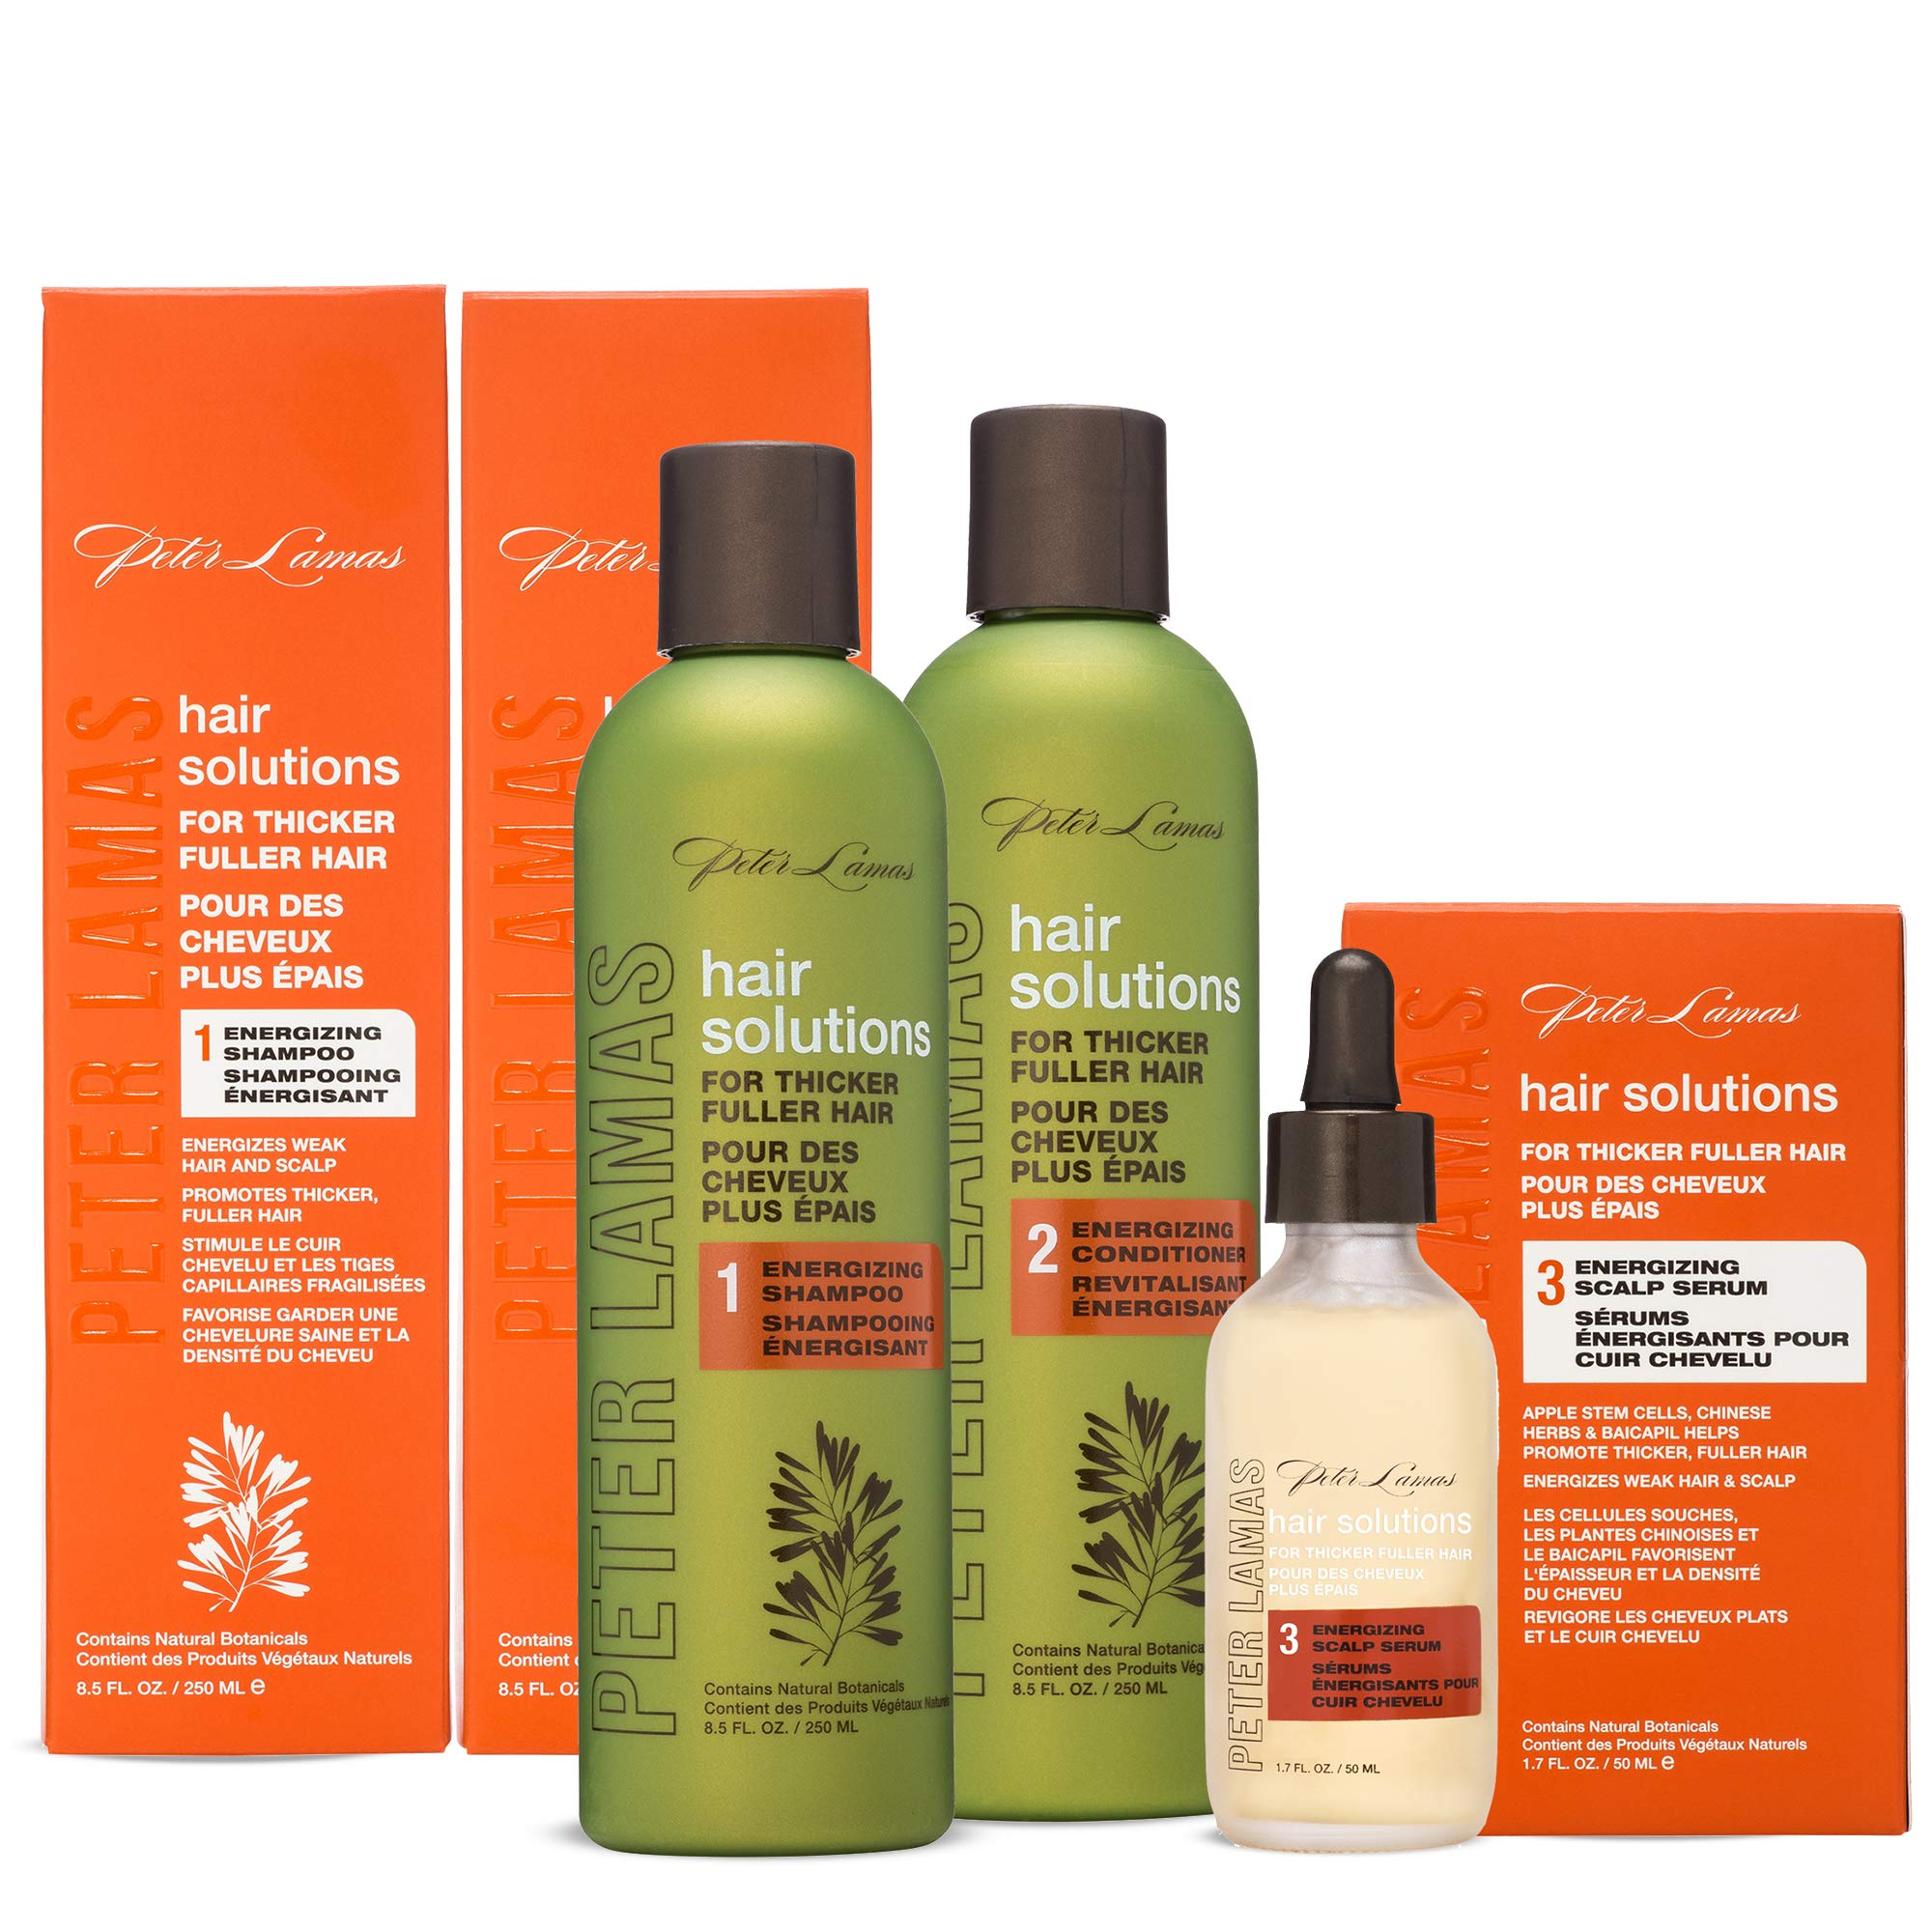 Peter Lamas Hair Solutions Energizing Shampoo, Conditioner & Serum Set, 3 Count by Peter Lamas